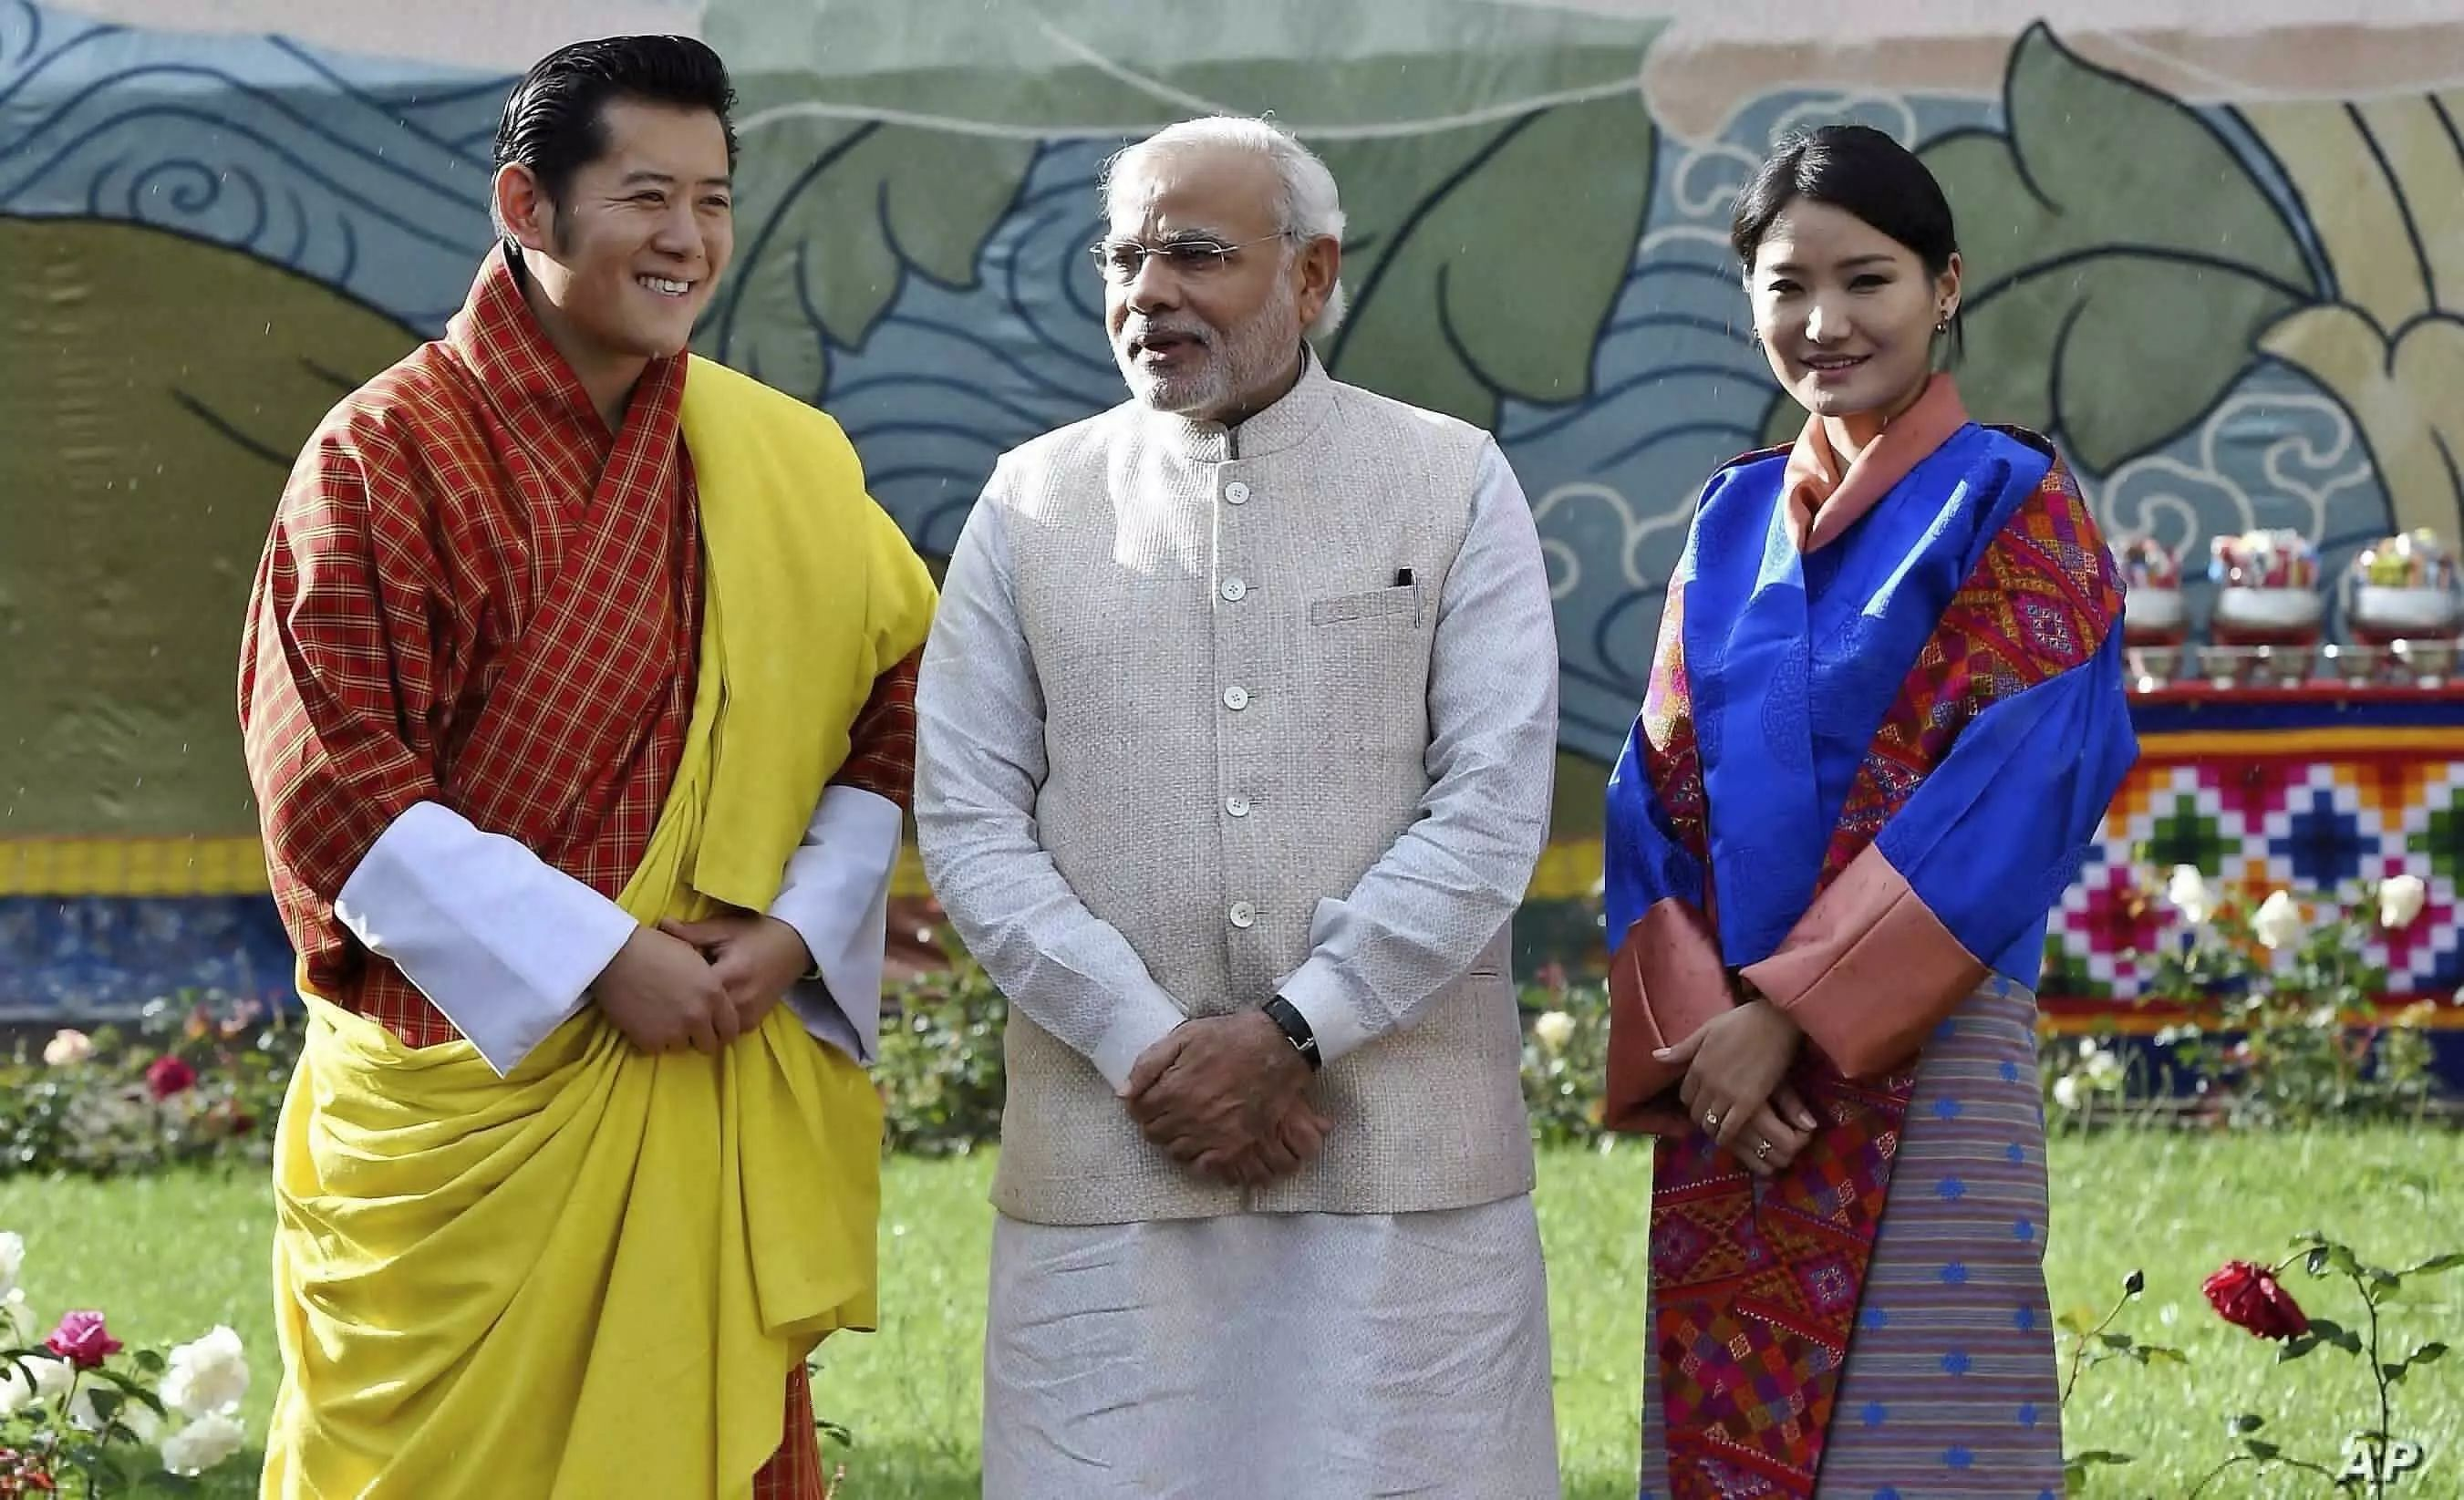 Bhutan hopes for stronger ties with India